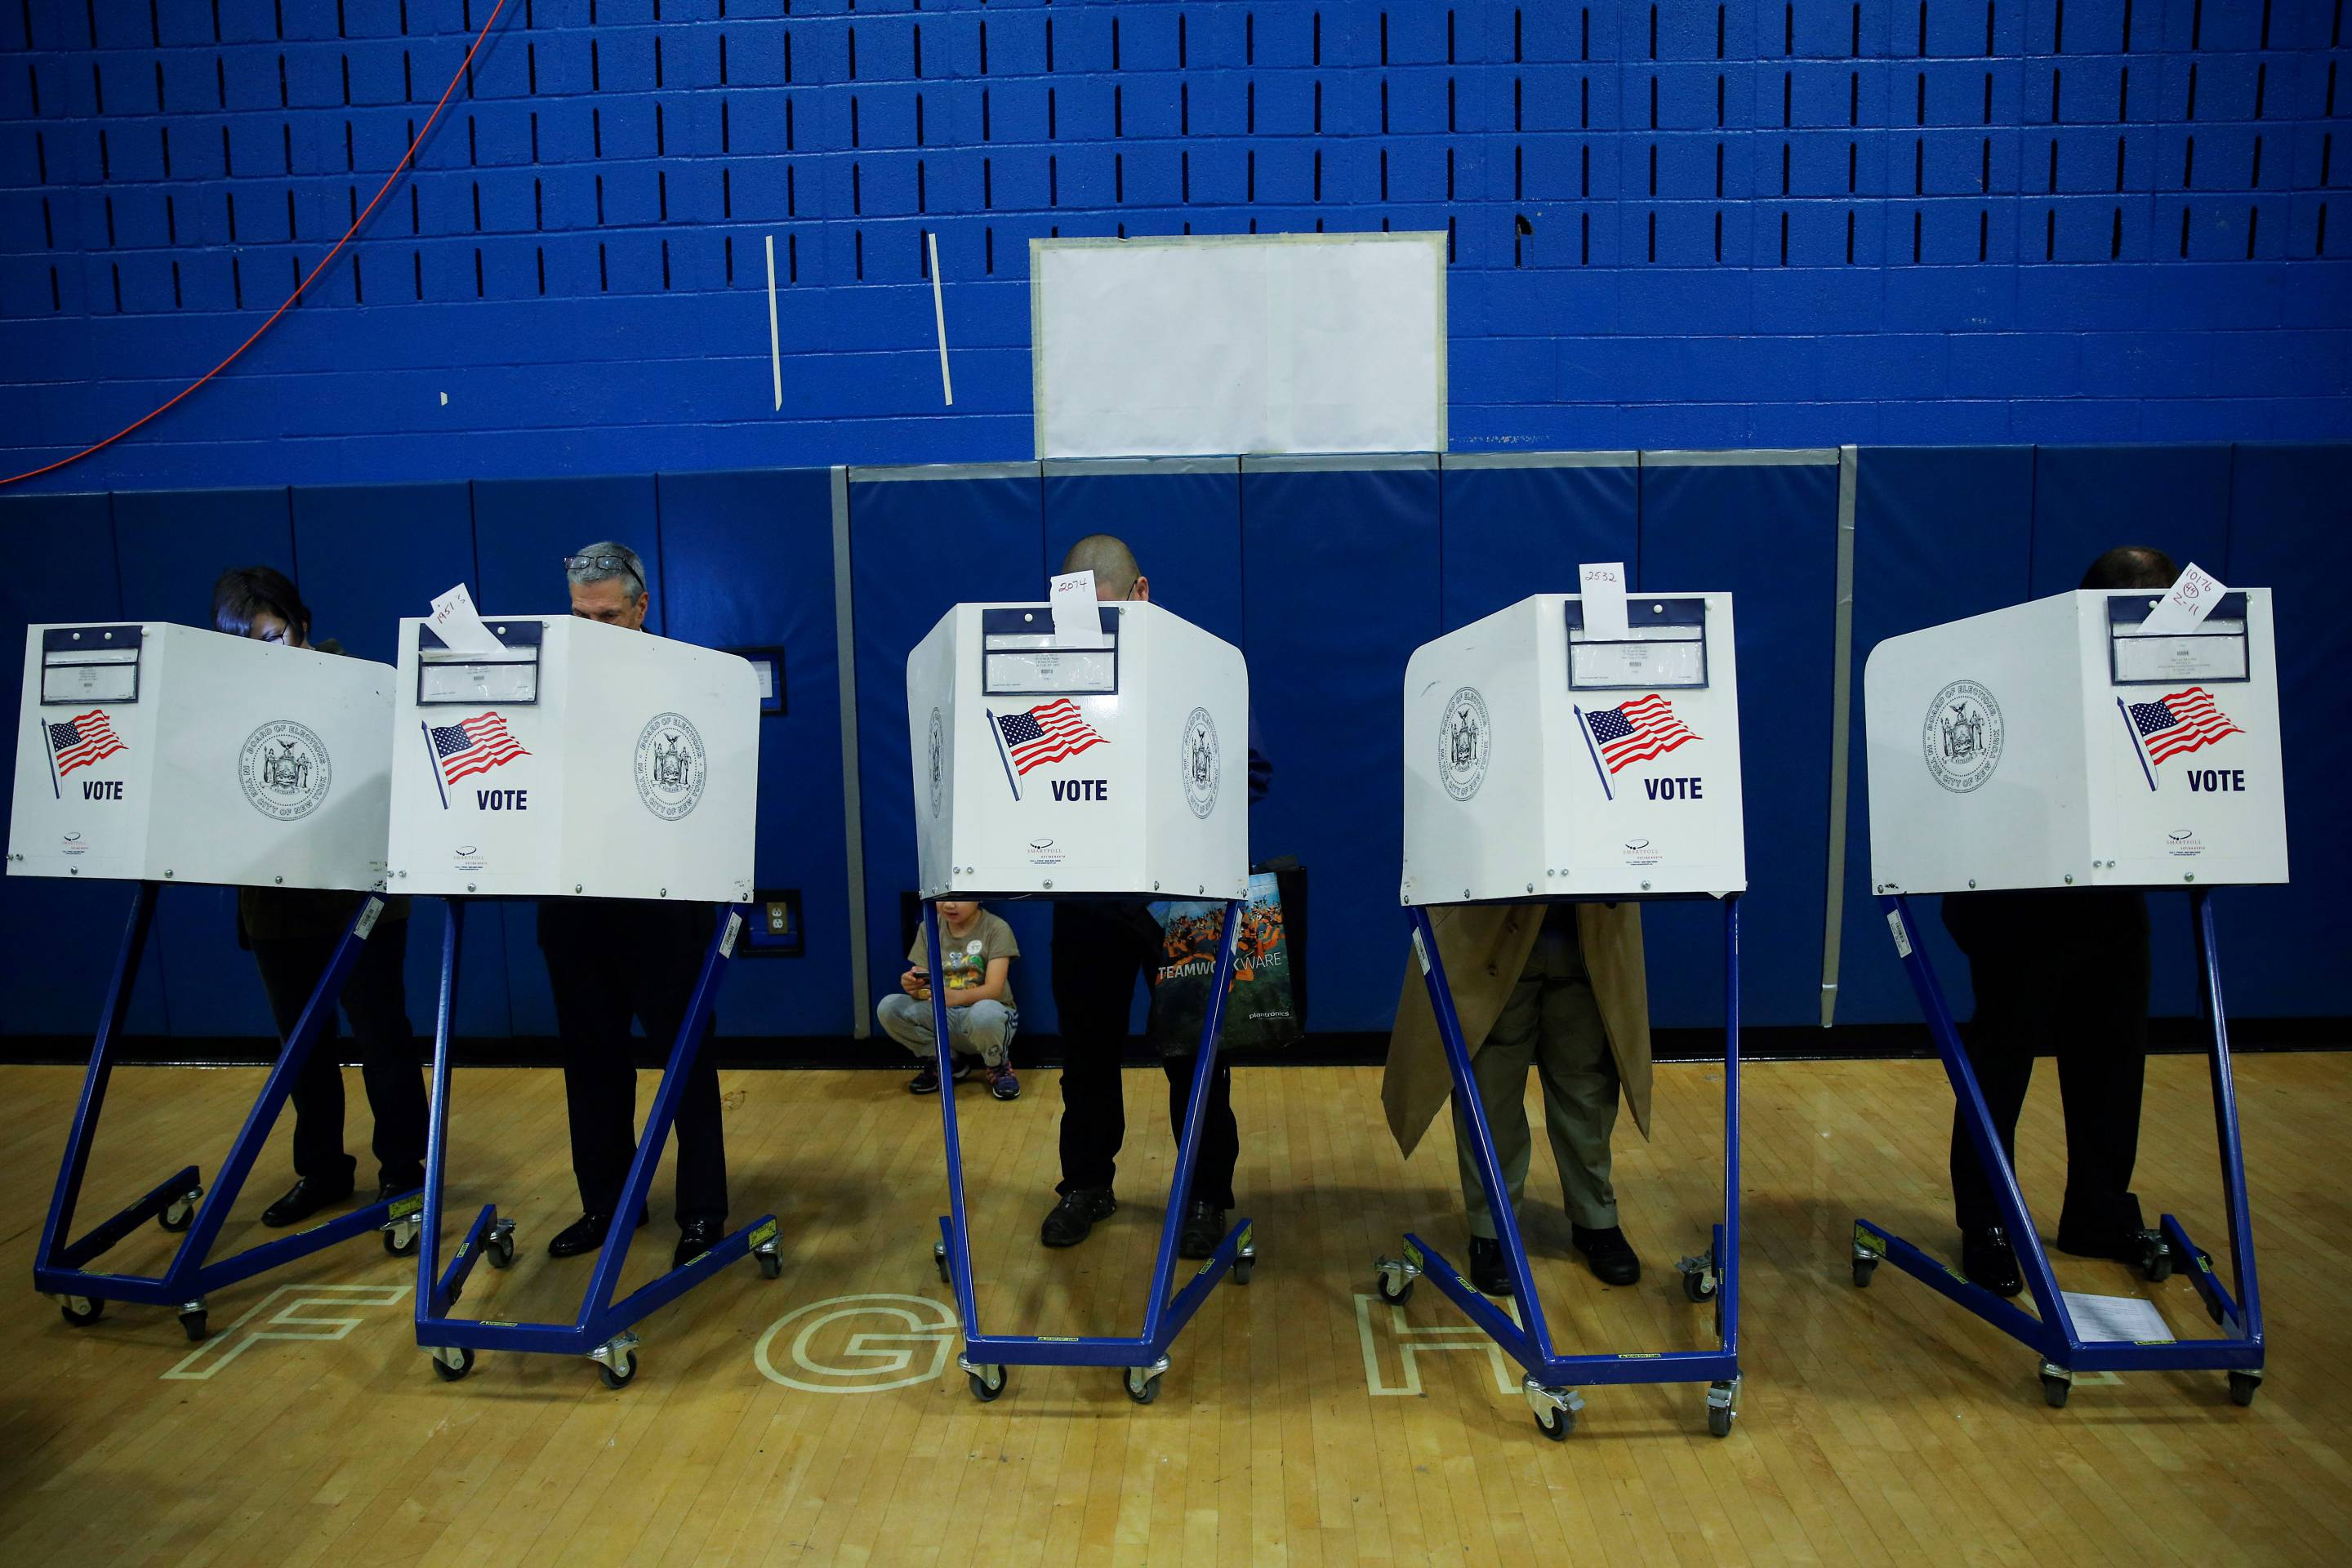 At least 34 million Americans cast votes early